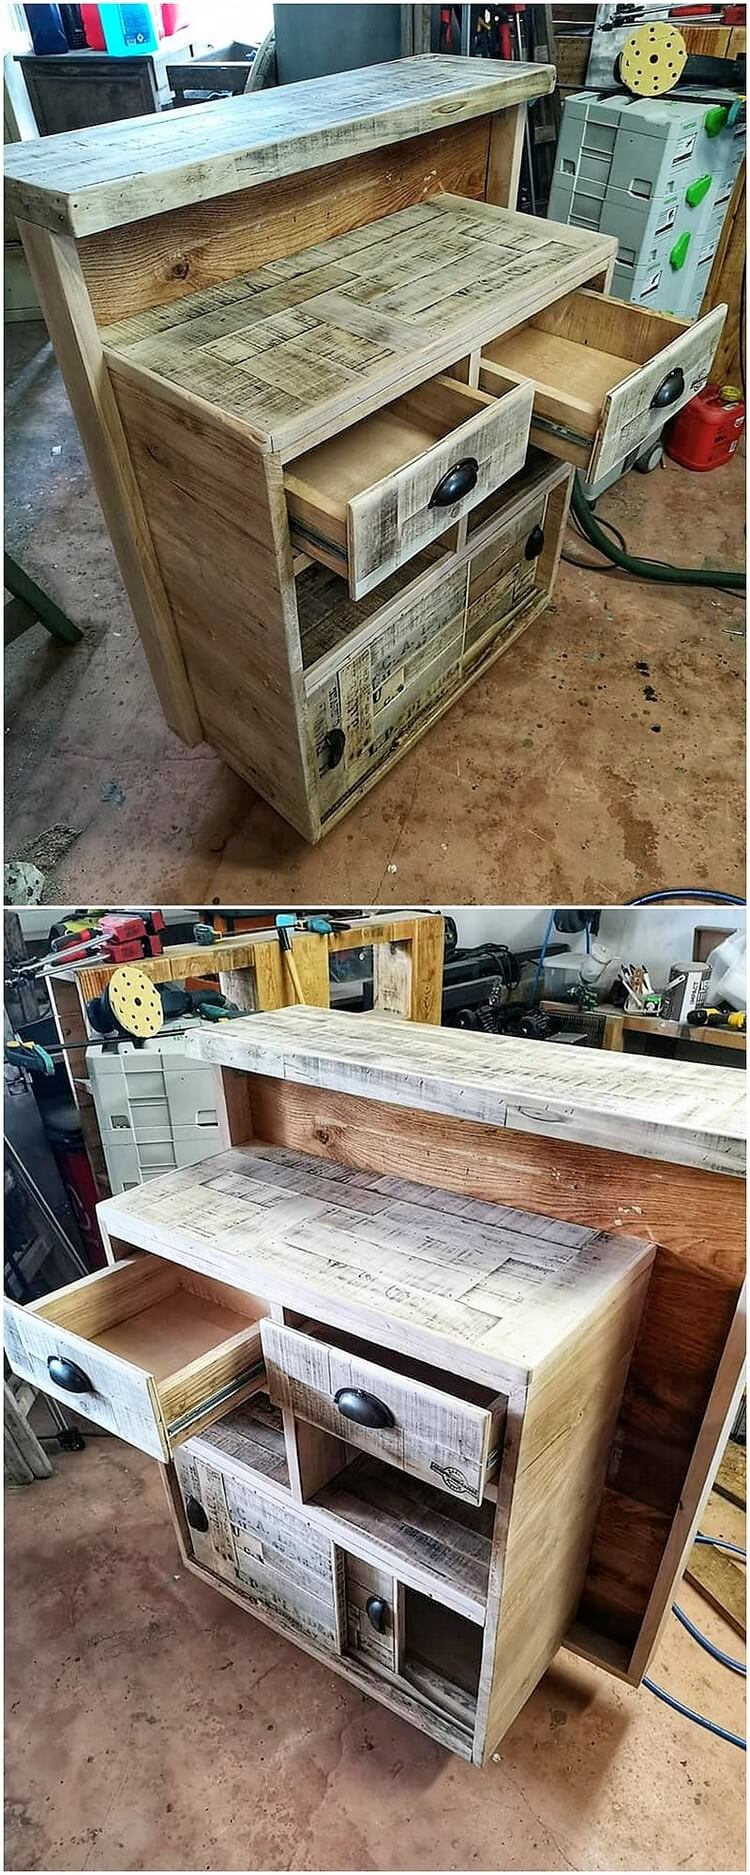 Pallet Reception Desk with Drawers